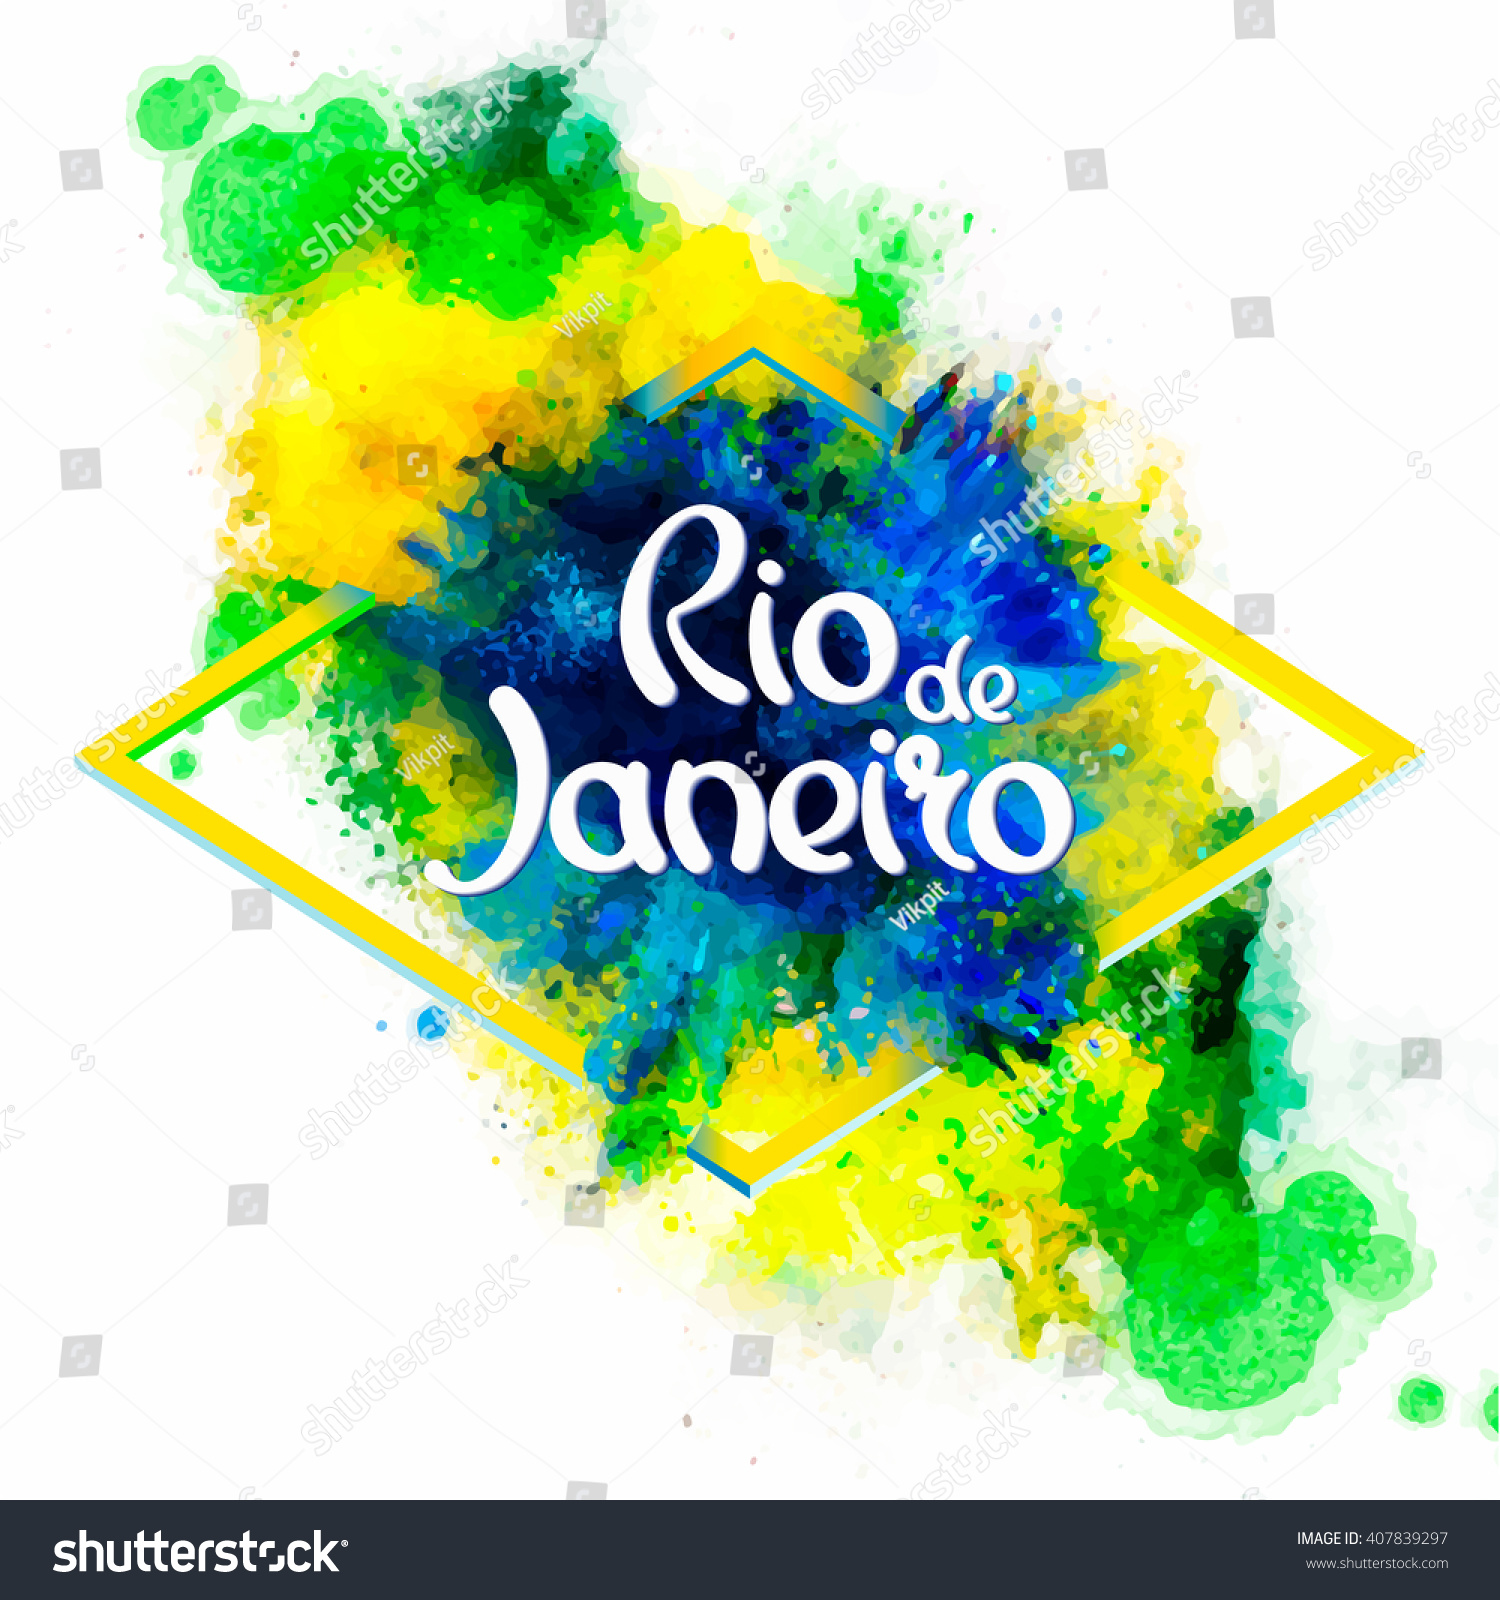 Handmade watercolor brazil flag brasil stock photos freeimages com - Inscription Rio De Janeiro Brazil Vacation On A Background Watercolor Stains Colors Of The Brazilian